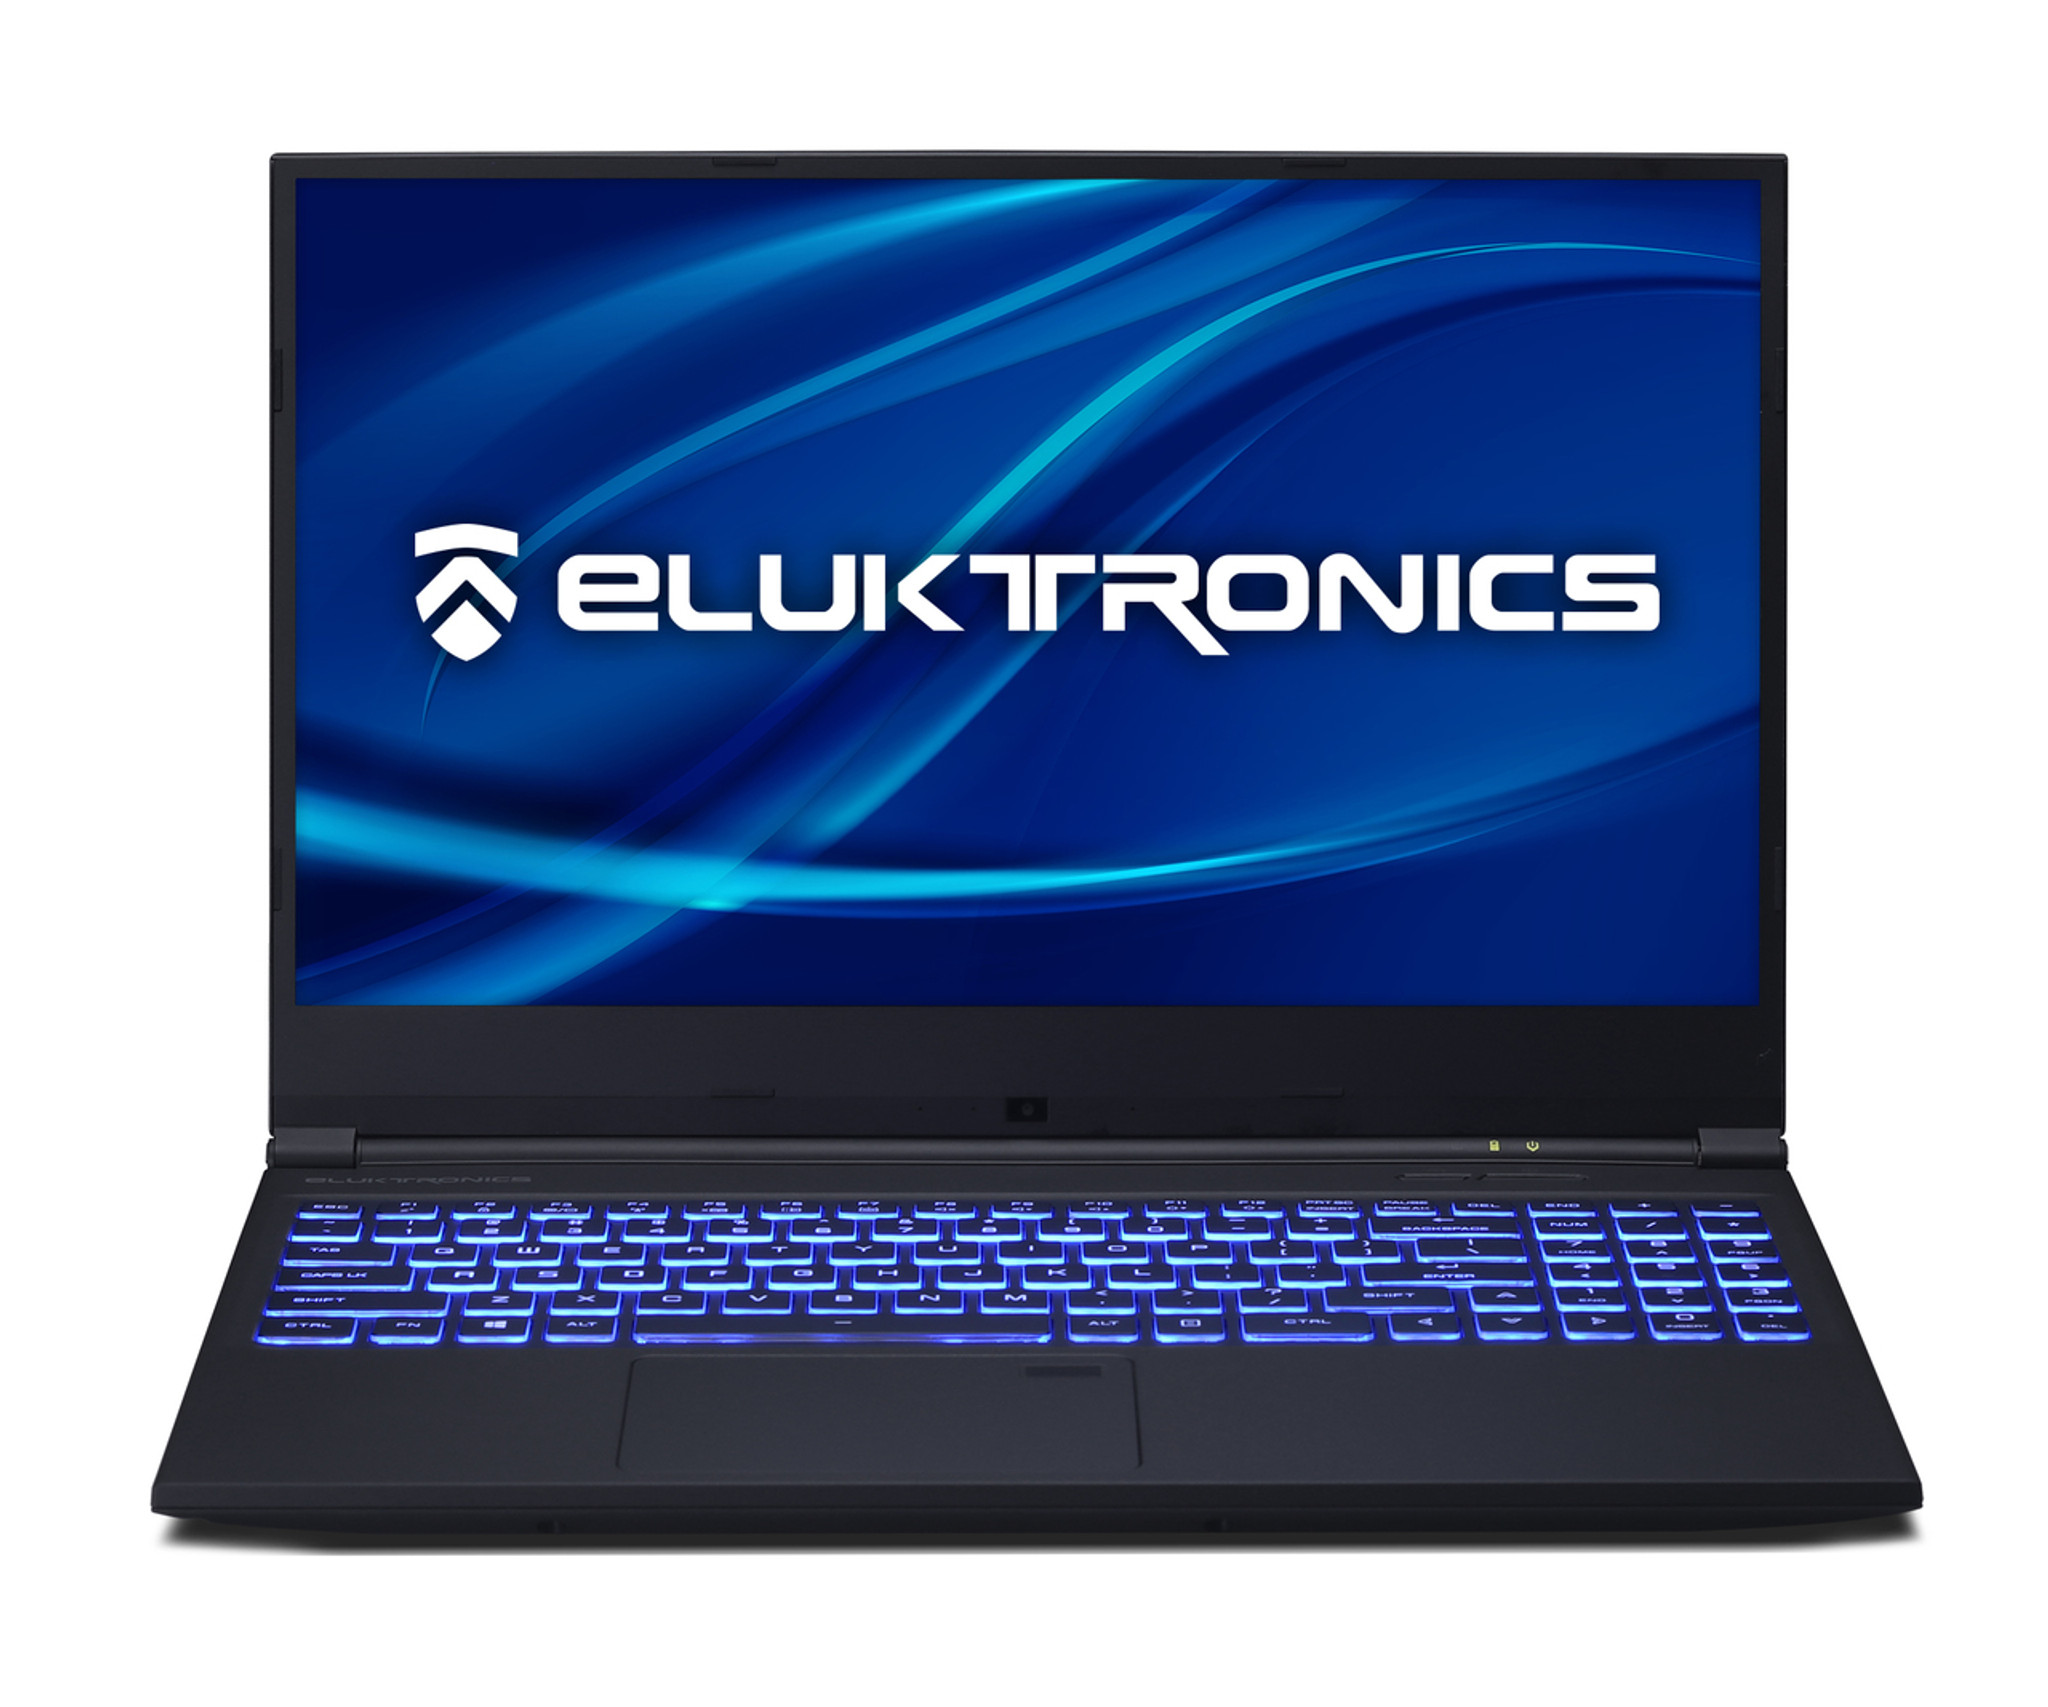 Eluktronics MB-15 Slim & Light Series 15 6-Inch Business Entertainment  Laptop with Glass Touchpad